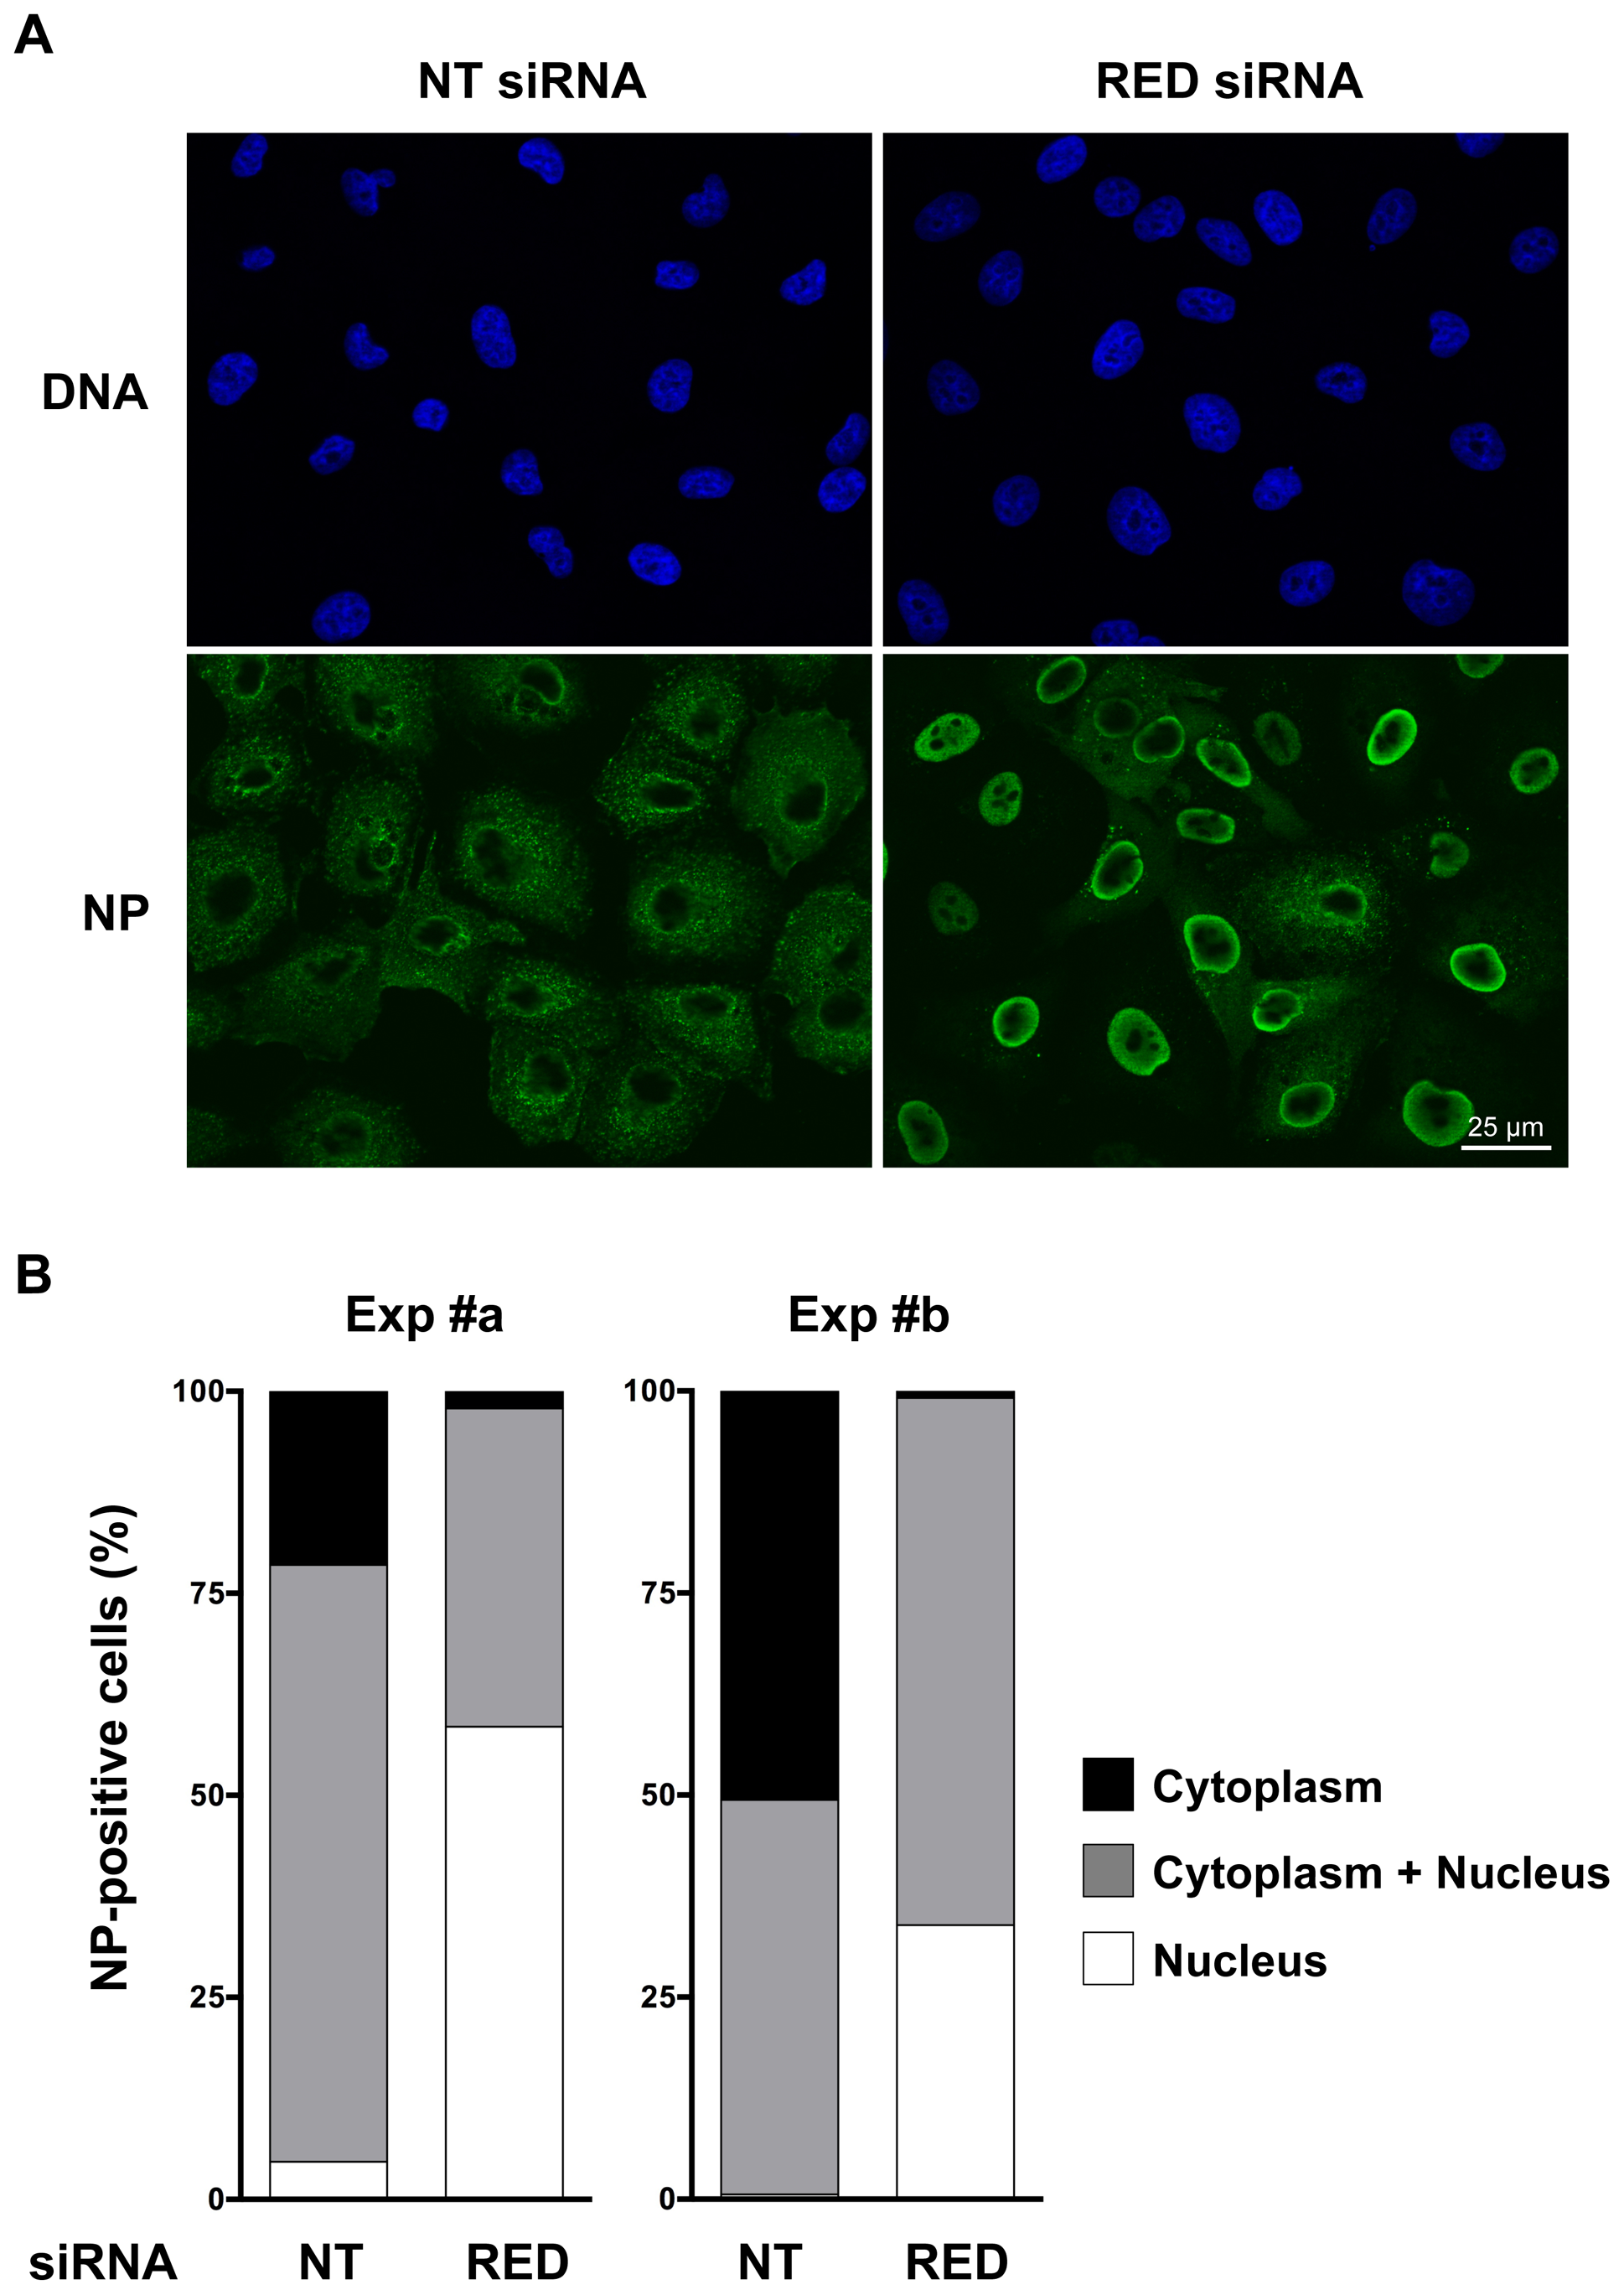 Effect of RED knock-down on the subcellular localization of NP in influenza virus infected cells.